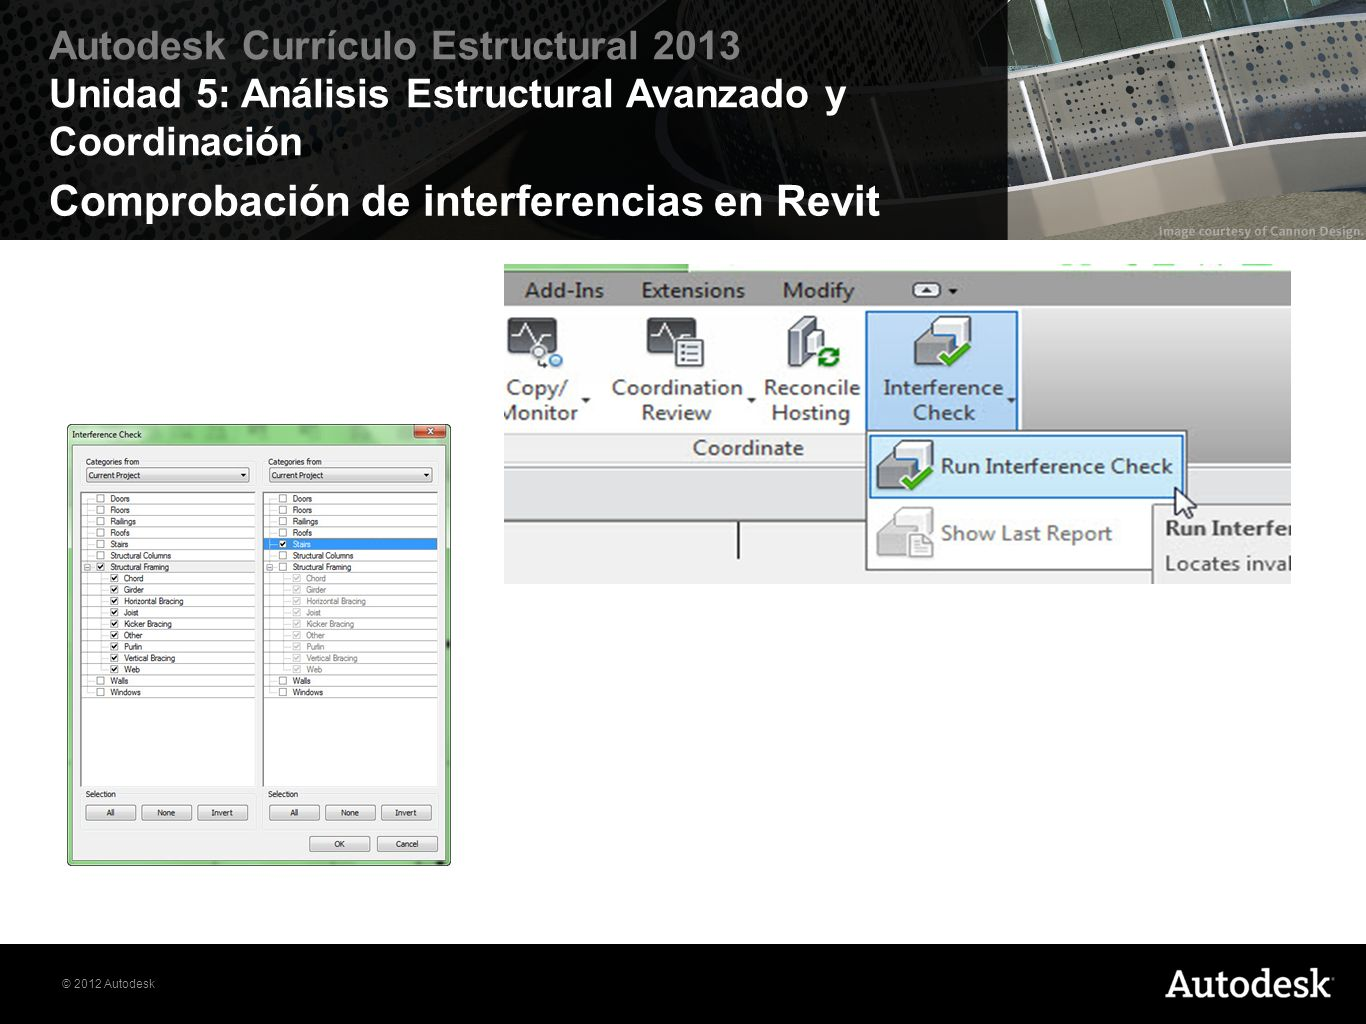 Comprobación de interferencias en Revit